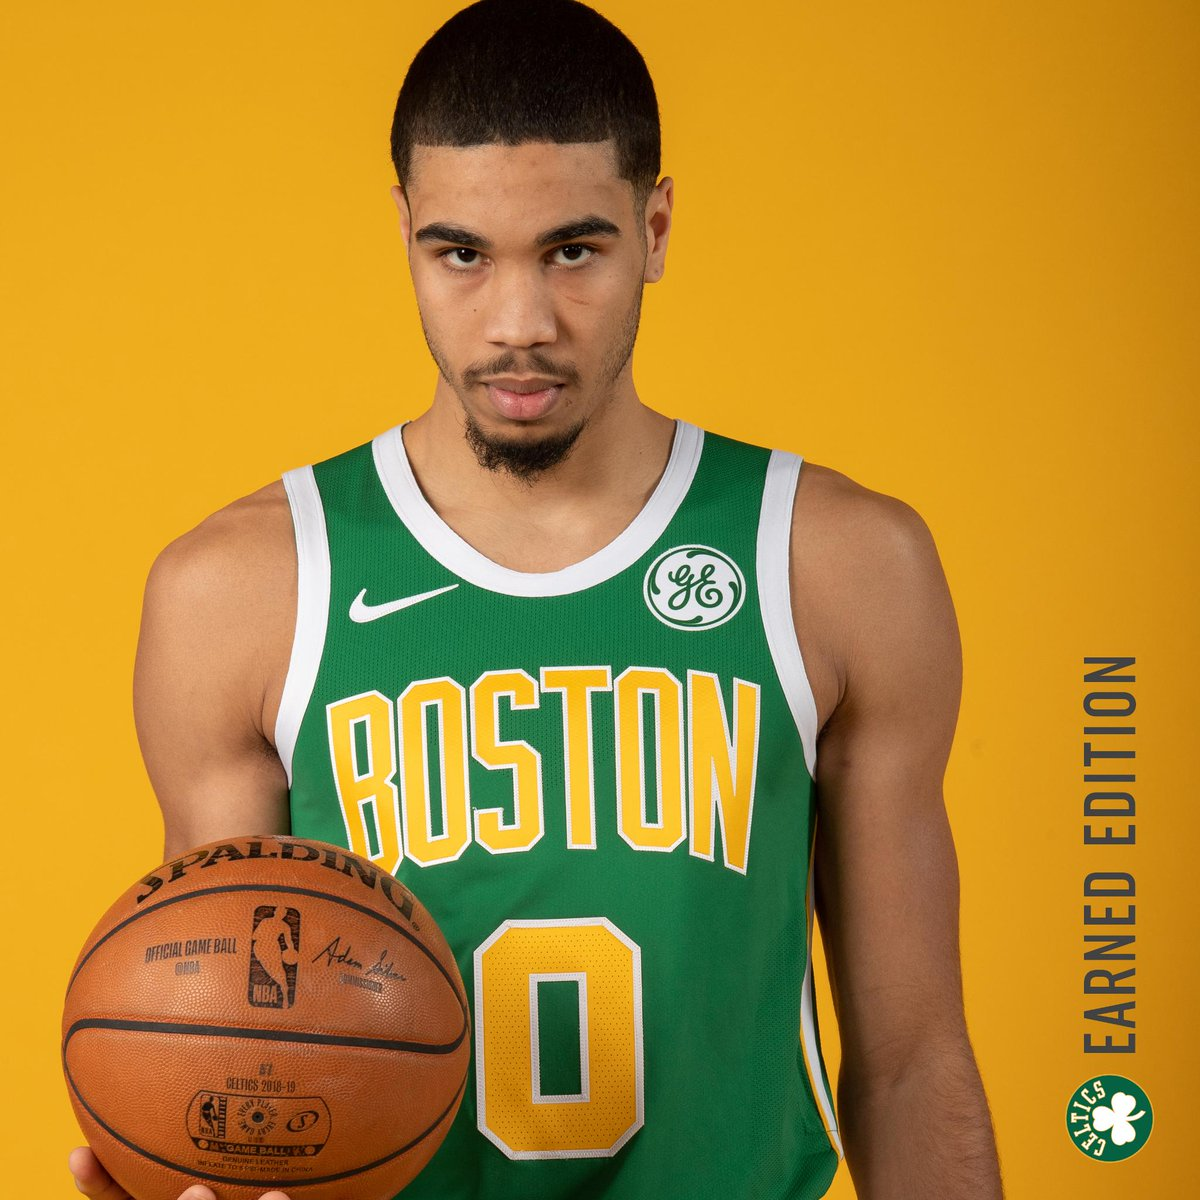 Boston Celtics On Twitter Add A Touch Of Gold To Your Green